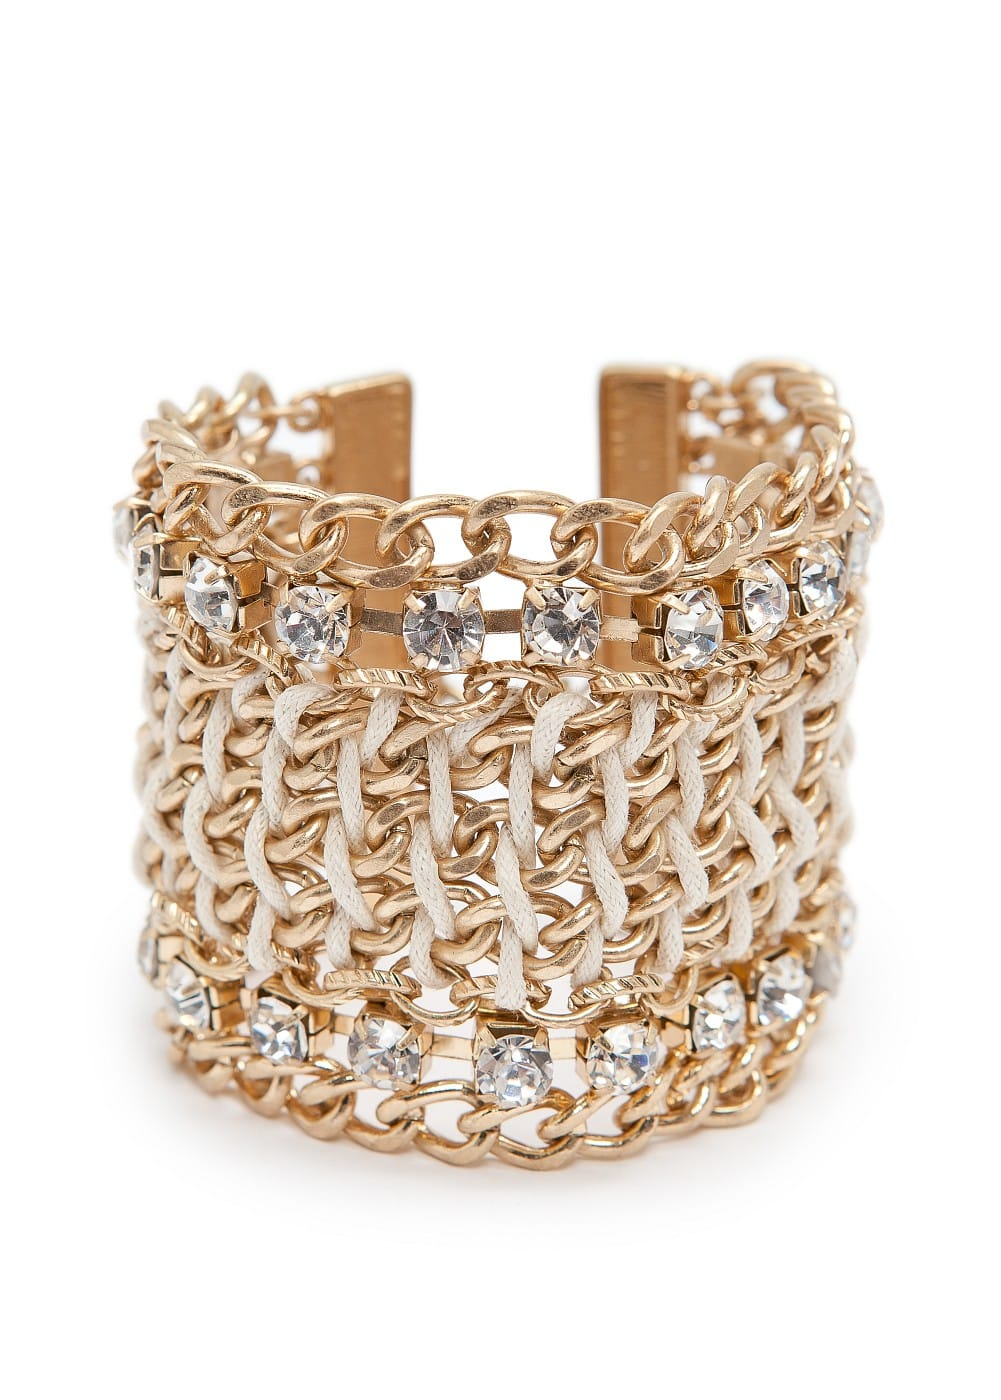 Chain cuff with crystals